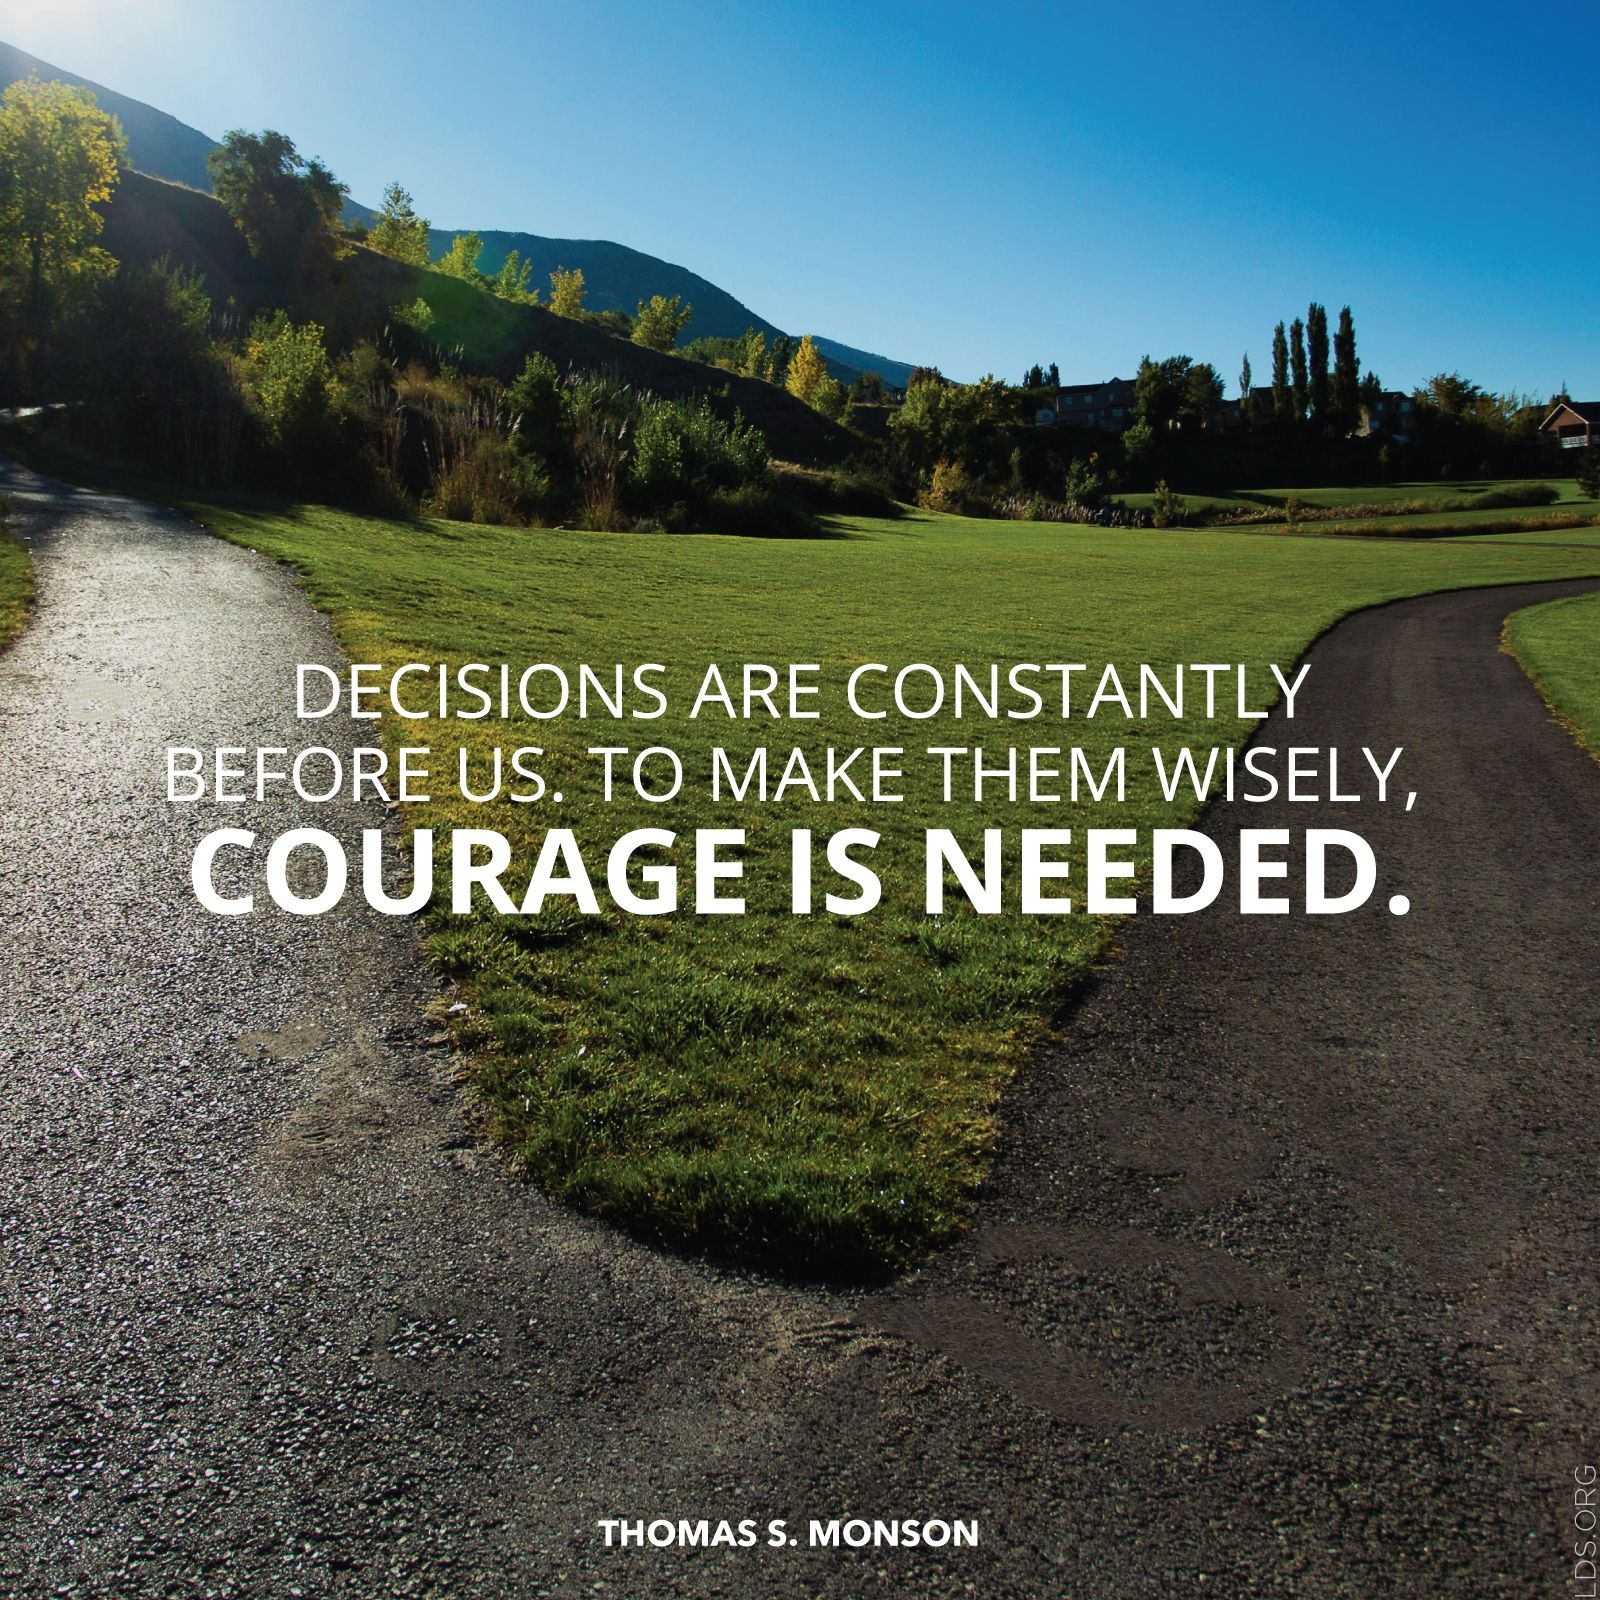 """""""Decisions are constantly before us. To make them wisely, courage is needed.""""—President Thomas S. Monson, """"The Three Rs of Choice"""""""